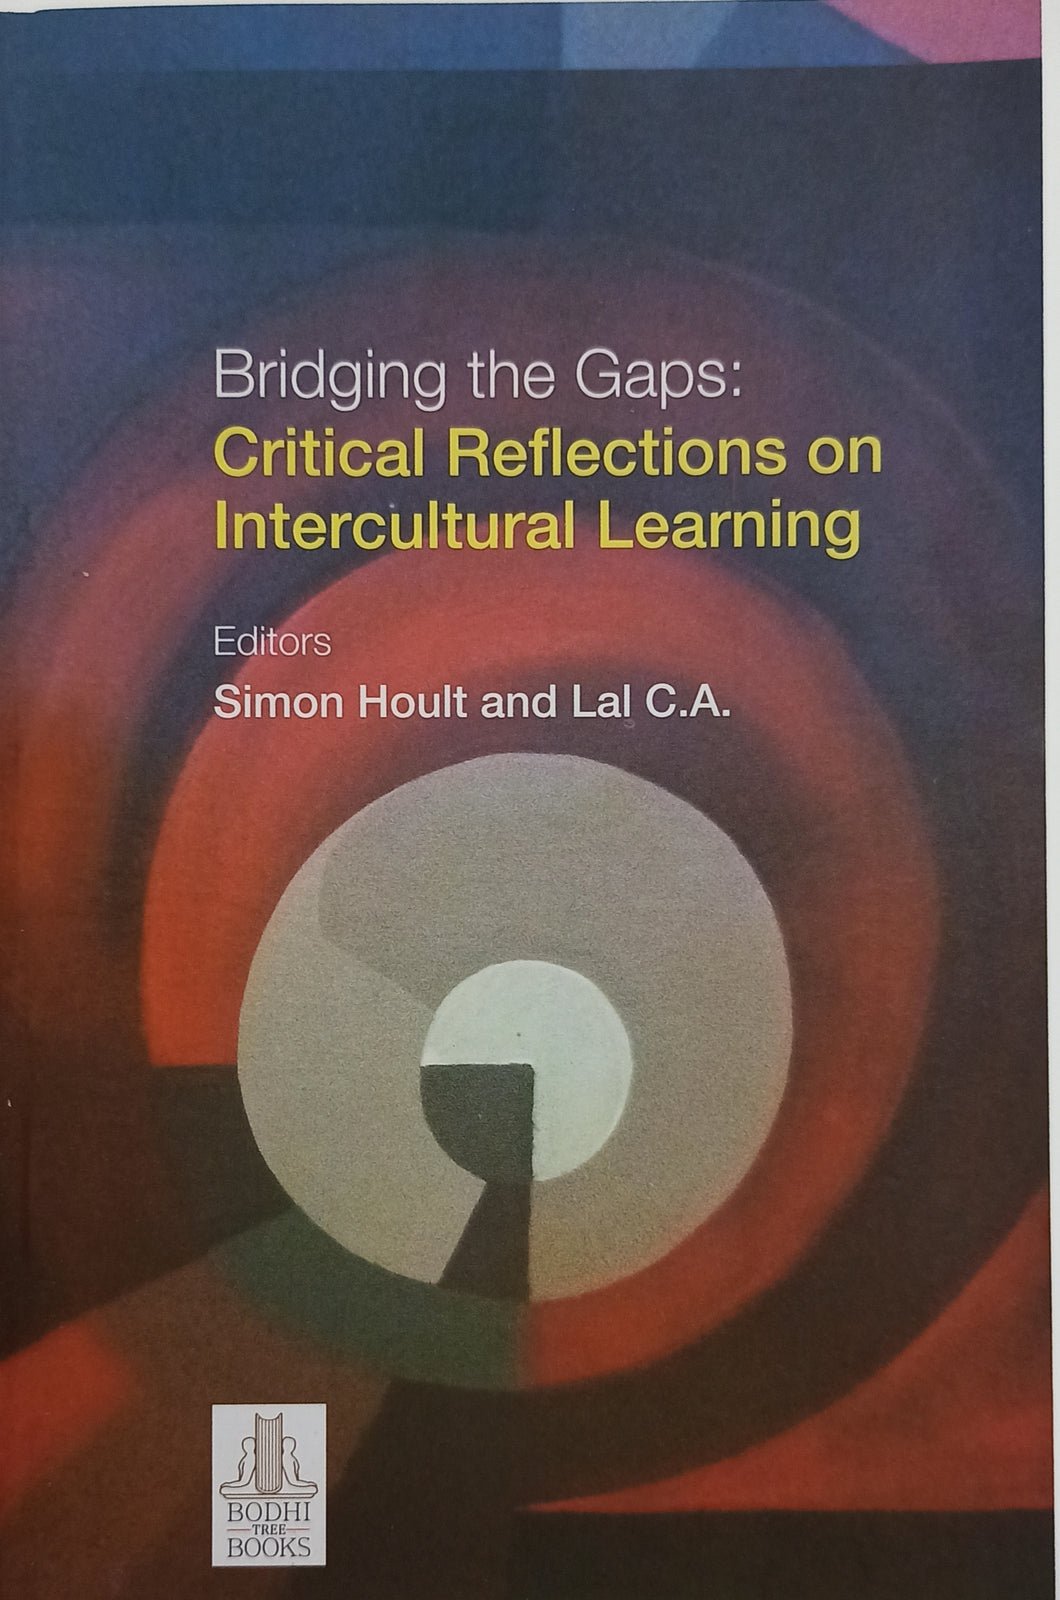 Bridging the Gaps: Critical Reflections on Intercultural Learning